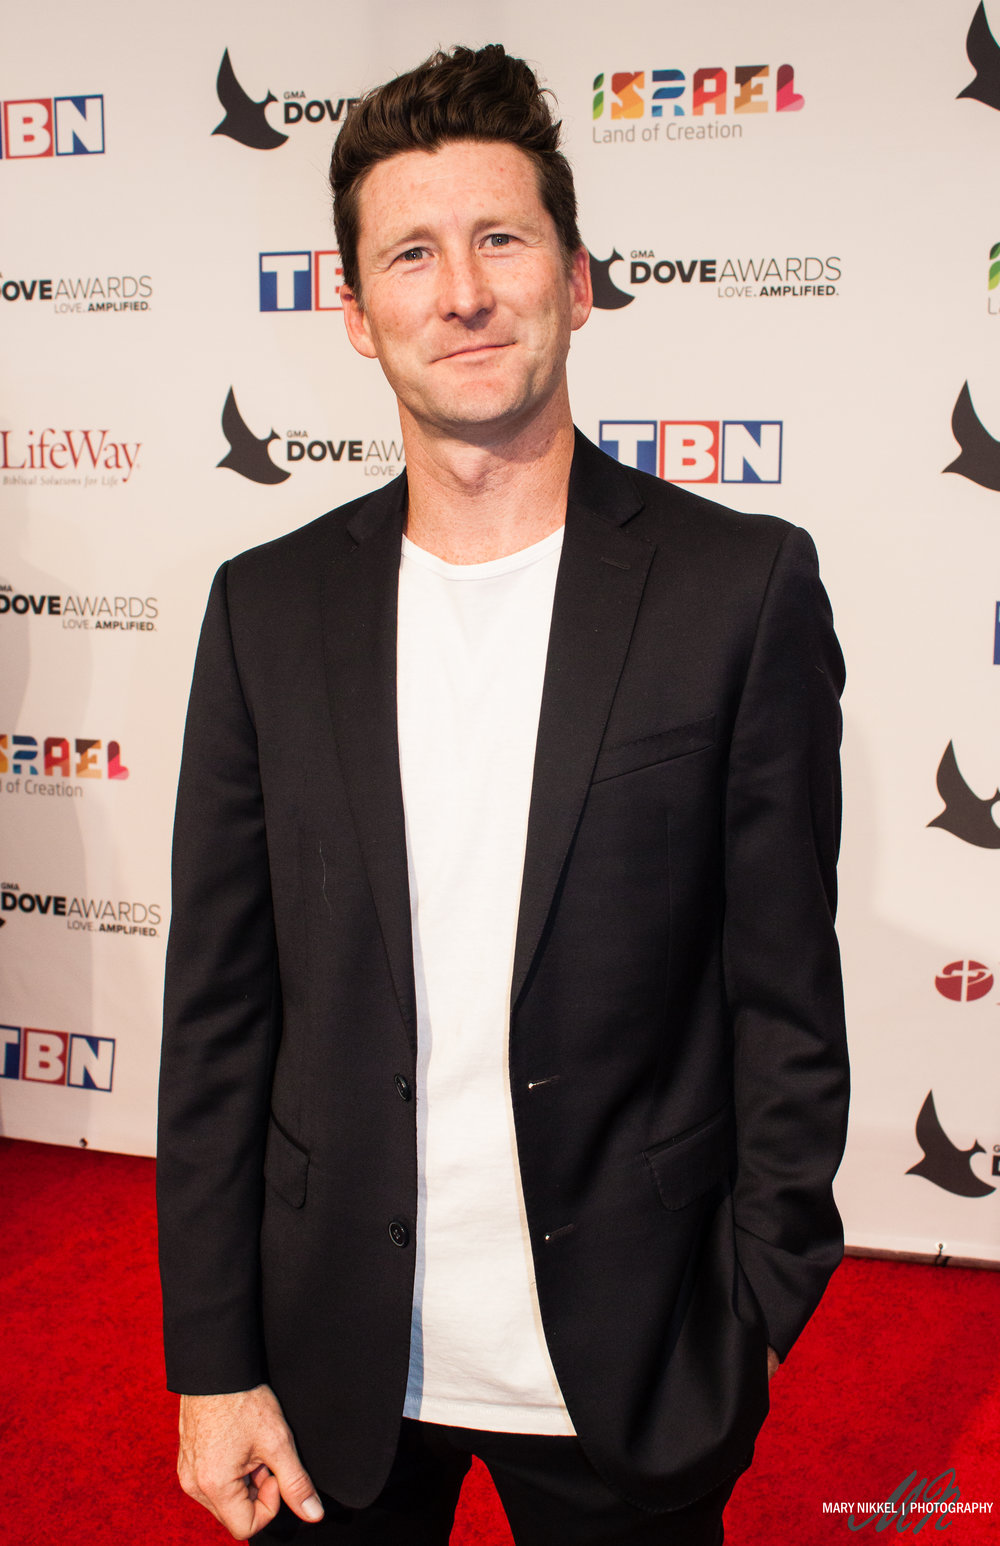 Stephen Christian of Anberlin on the 2016 GMA Dove Awards red carpet